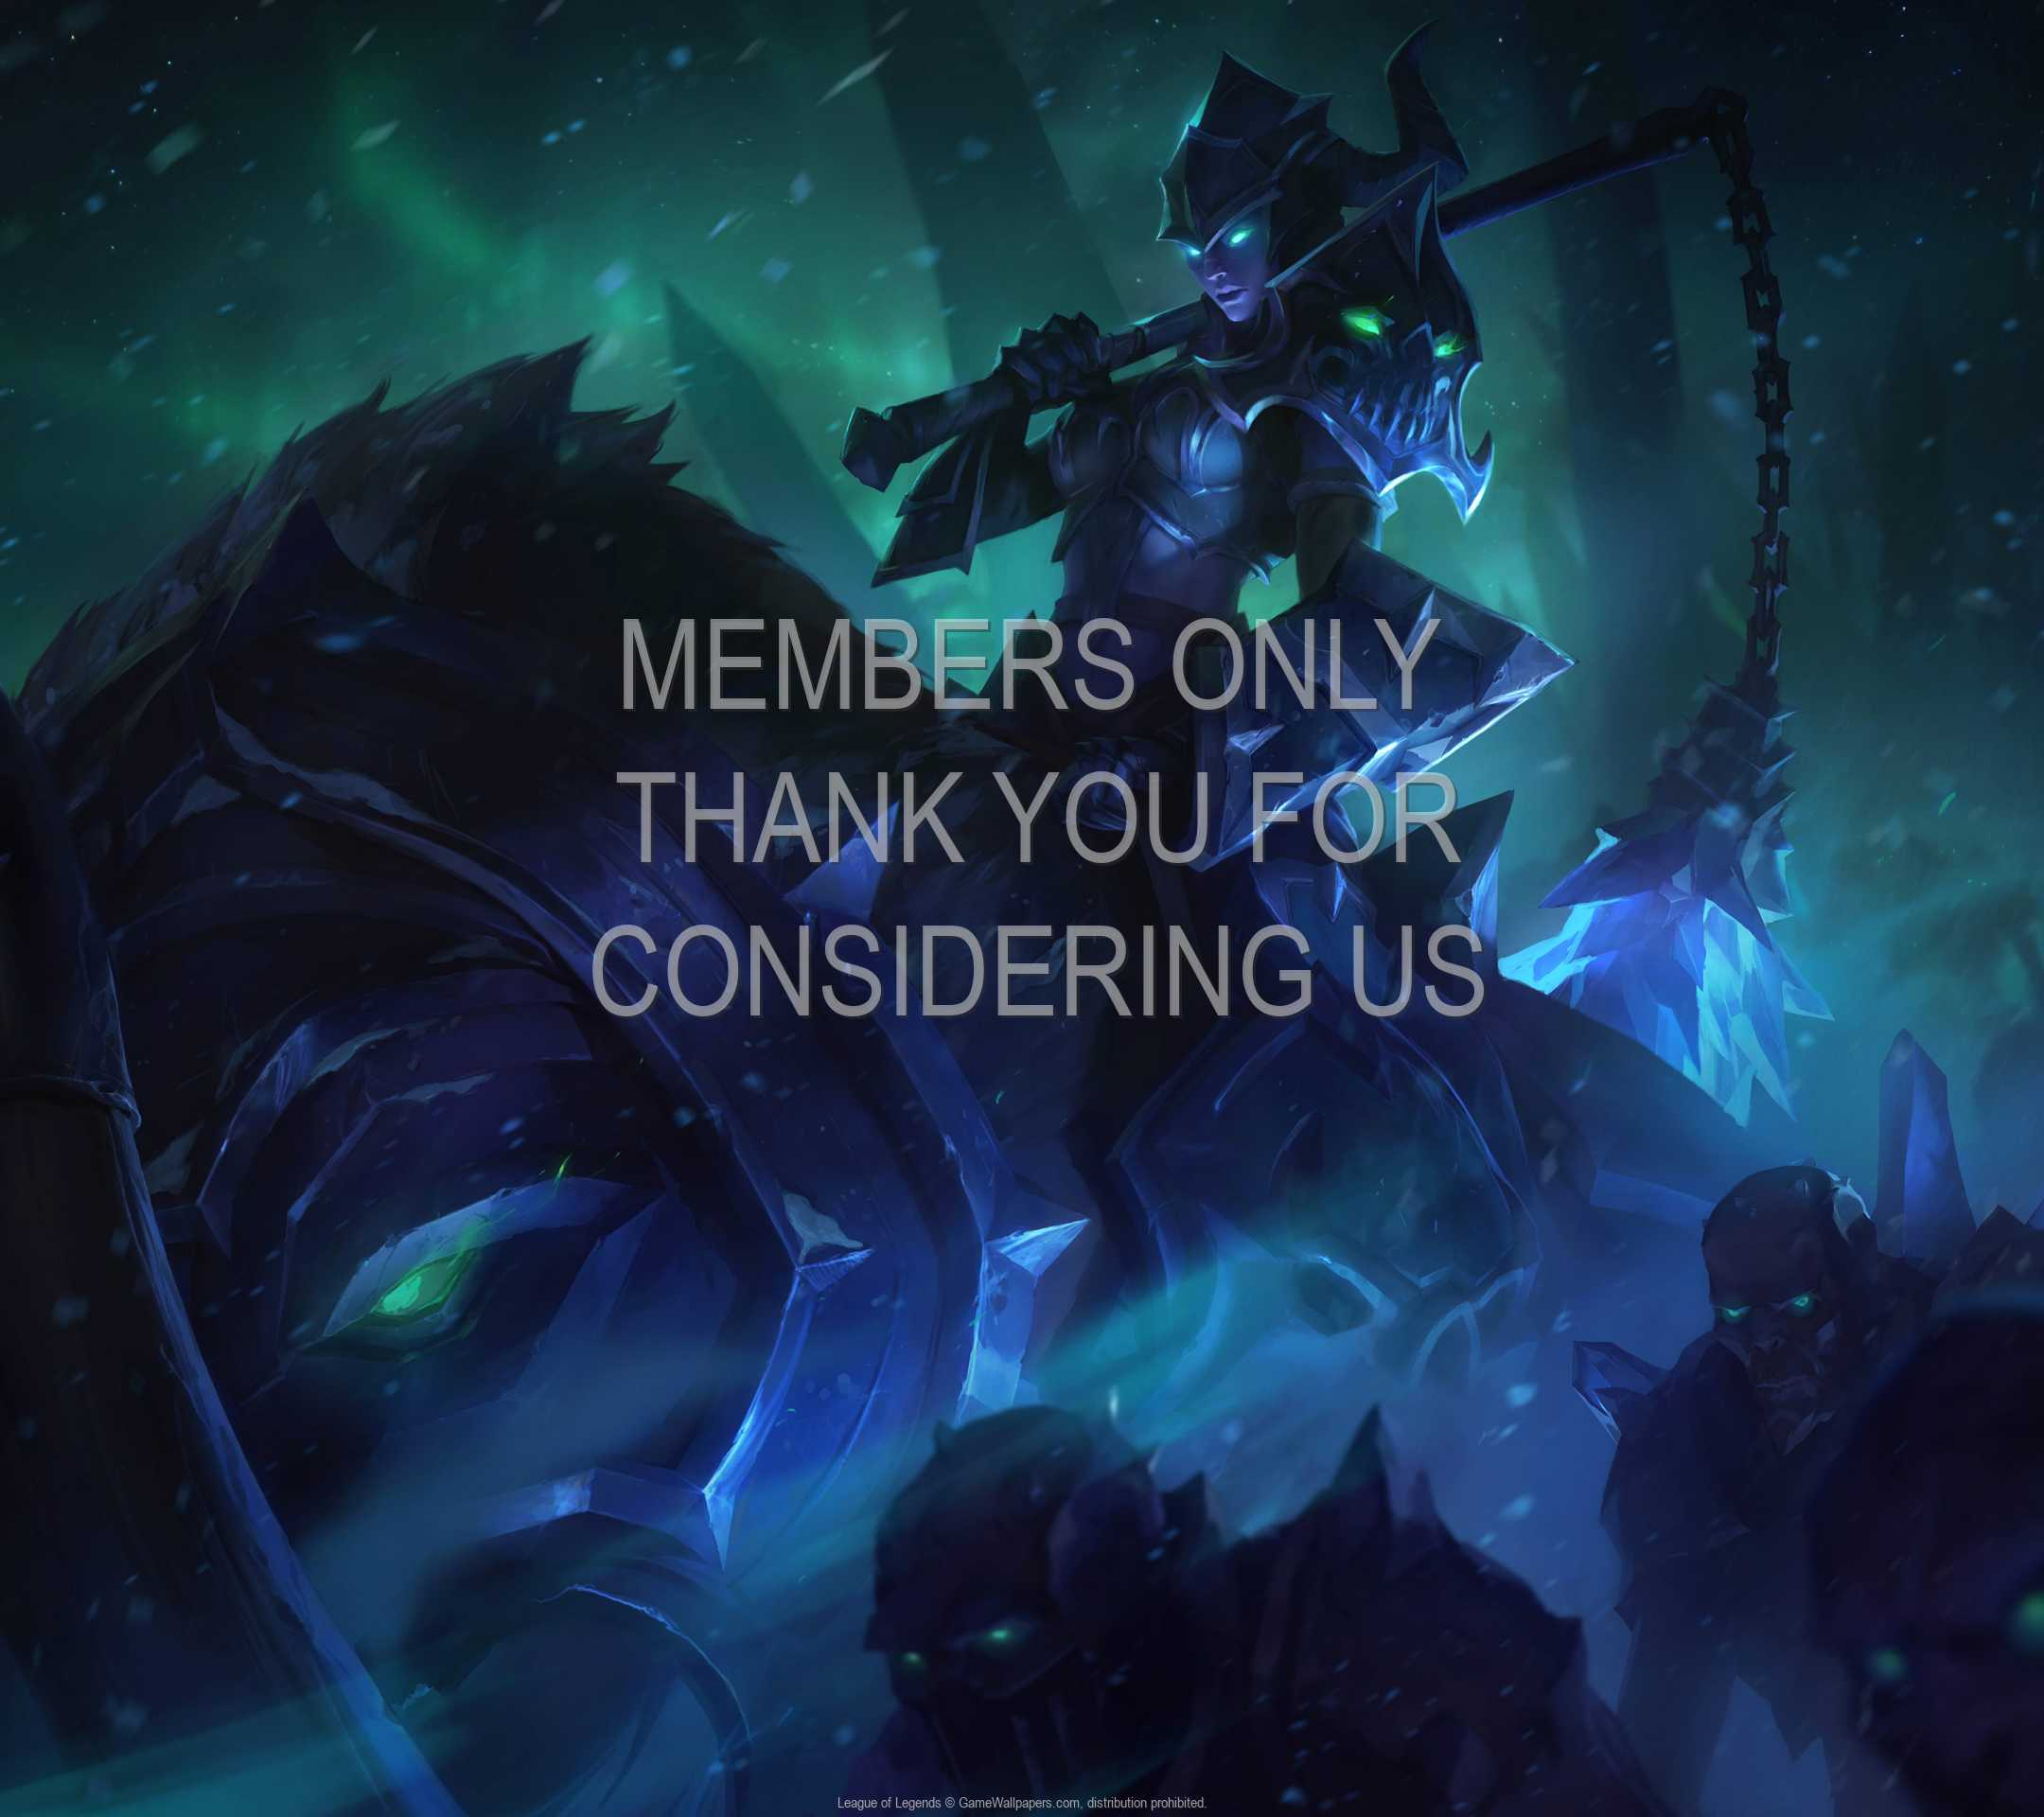 League of Legends 1080p Horizontal Mobile wallpaper or background 92